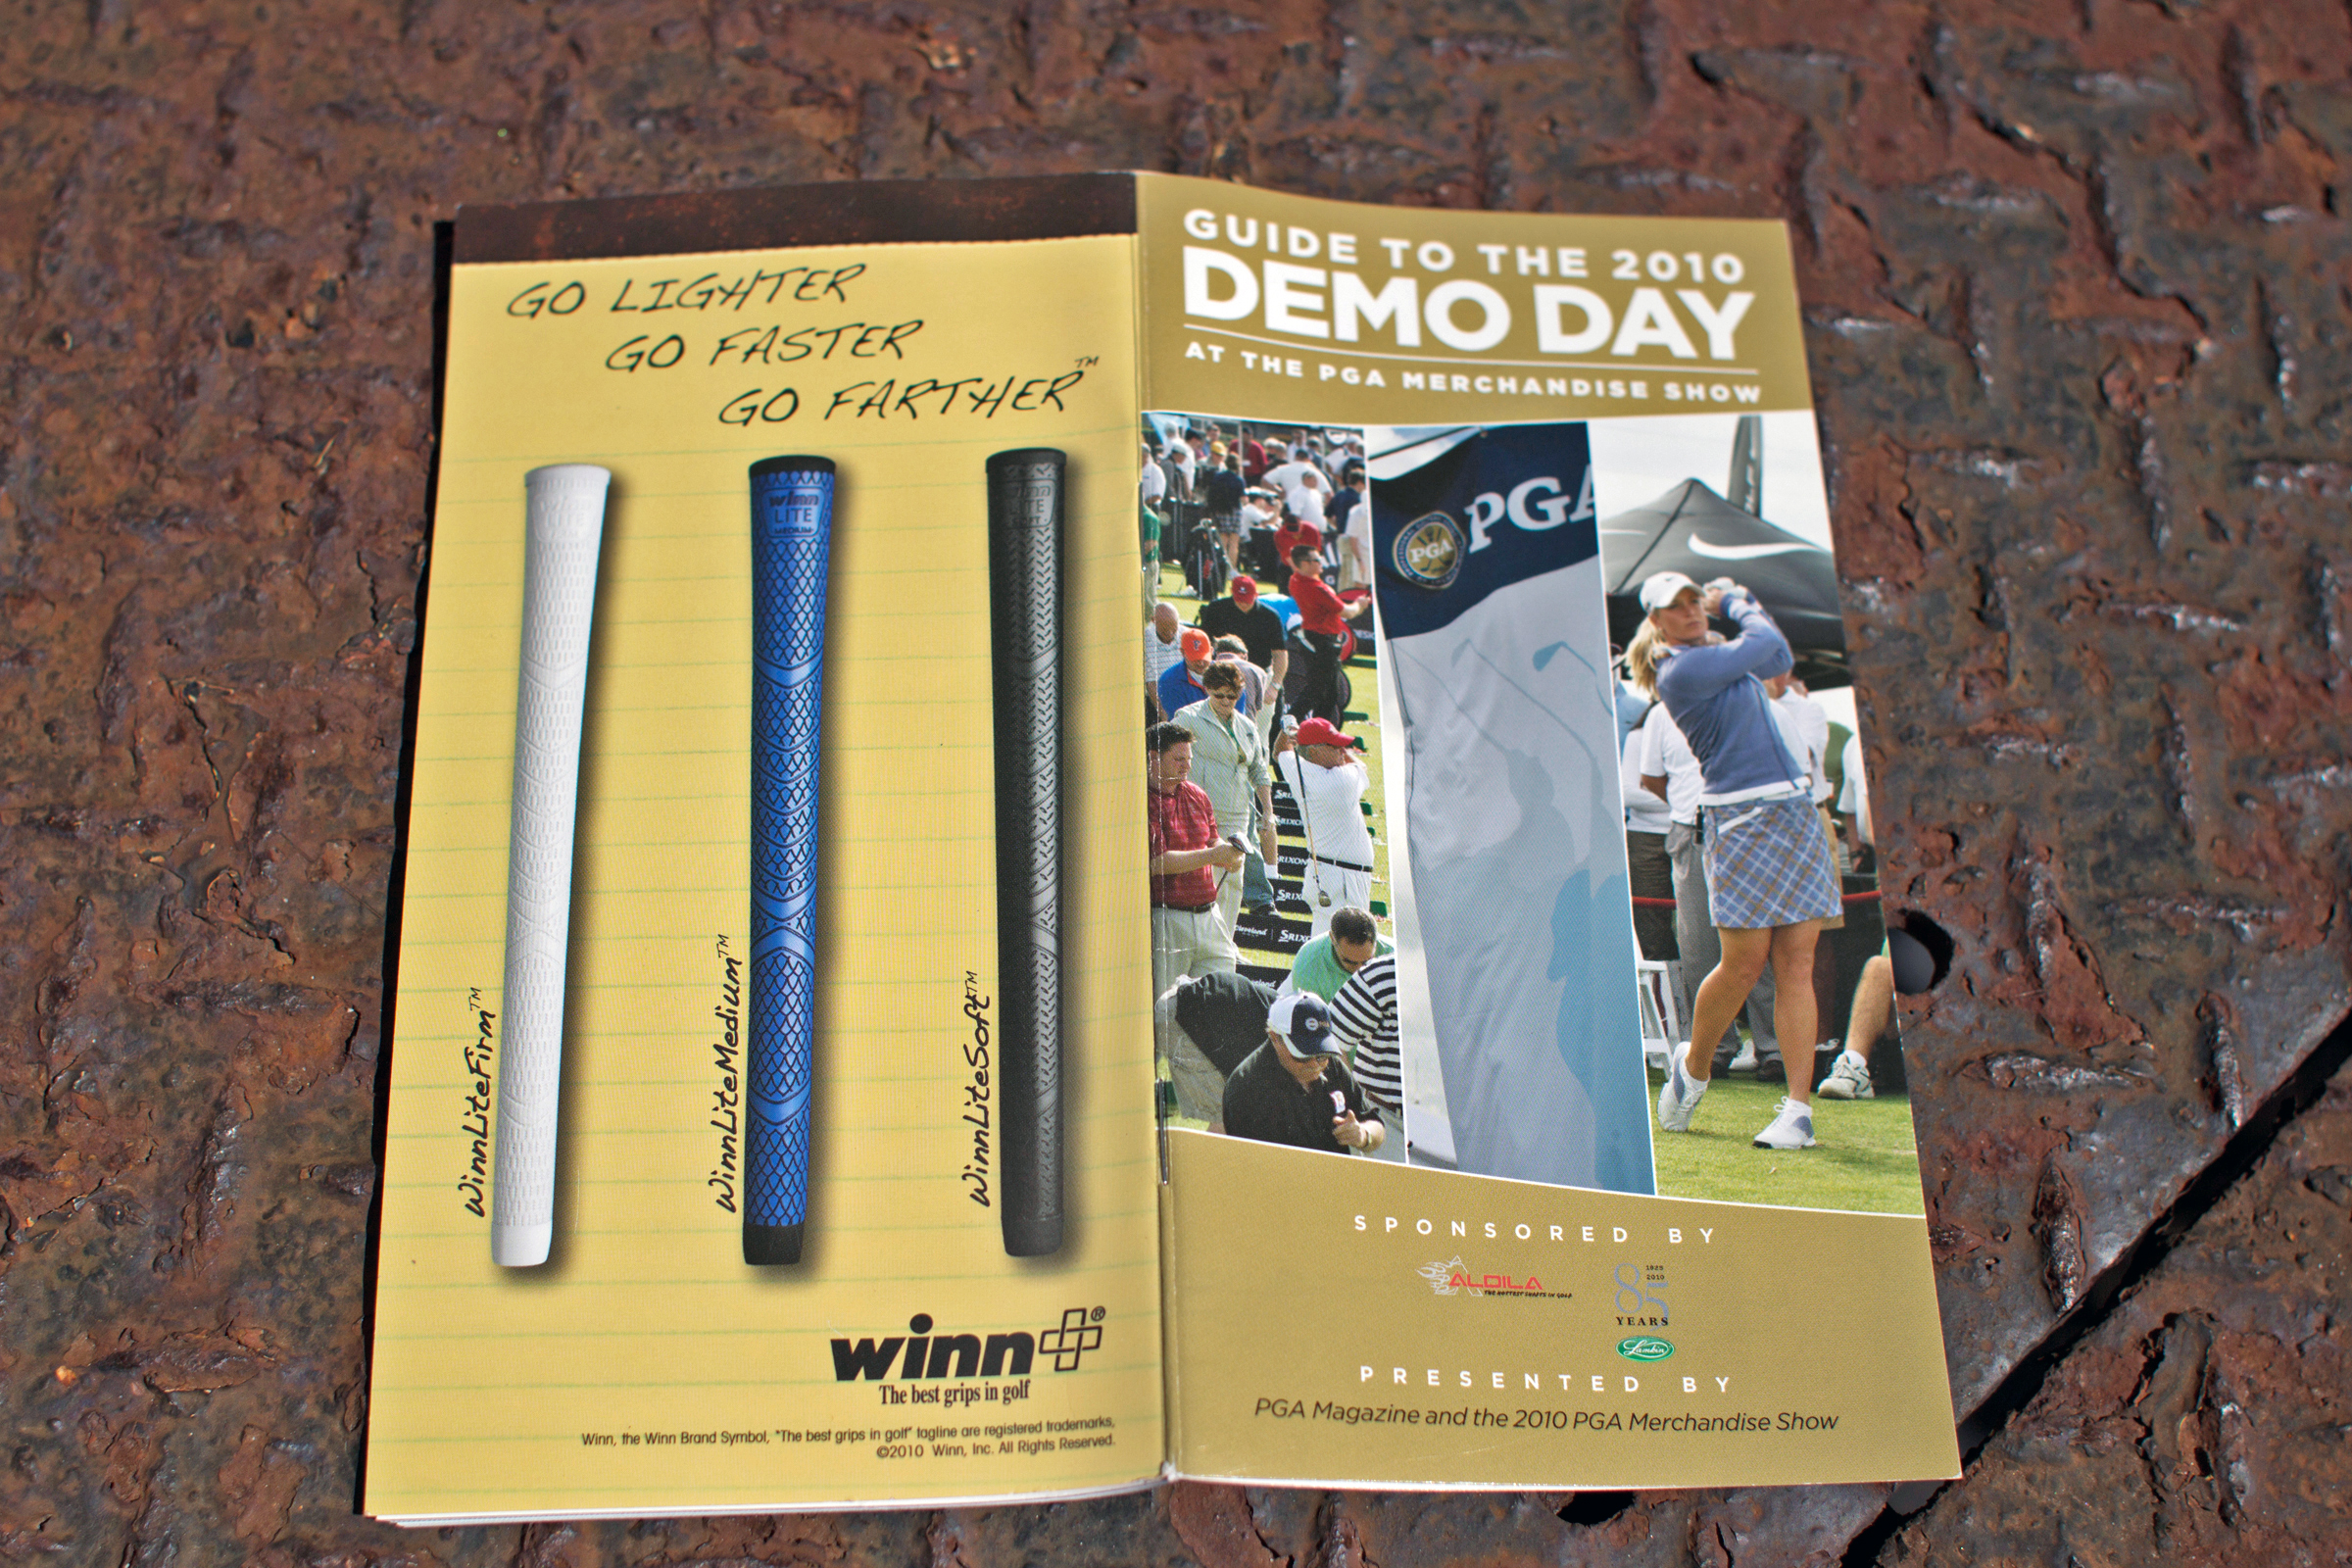 Guide to Demo Day by PGA Magazine, 2010 PGA Merchandise Show.